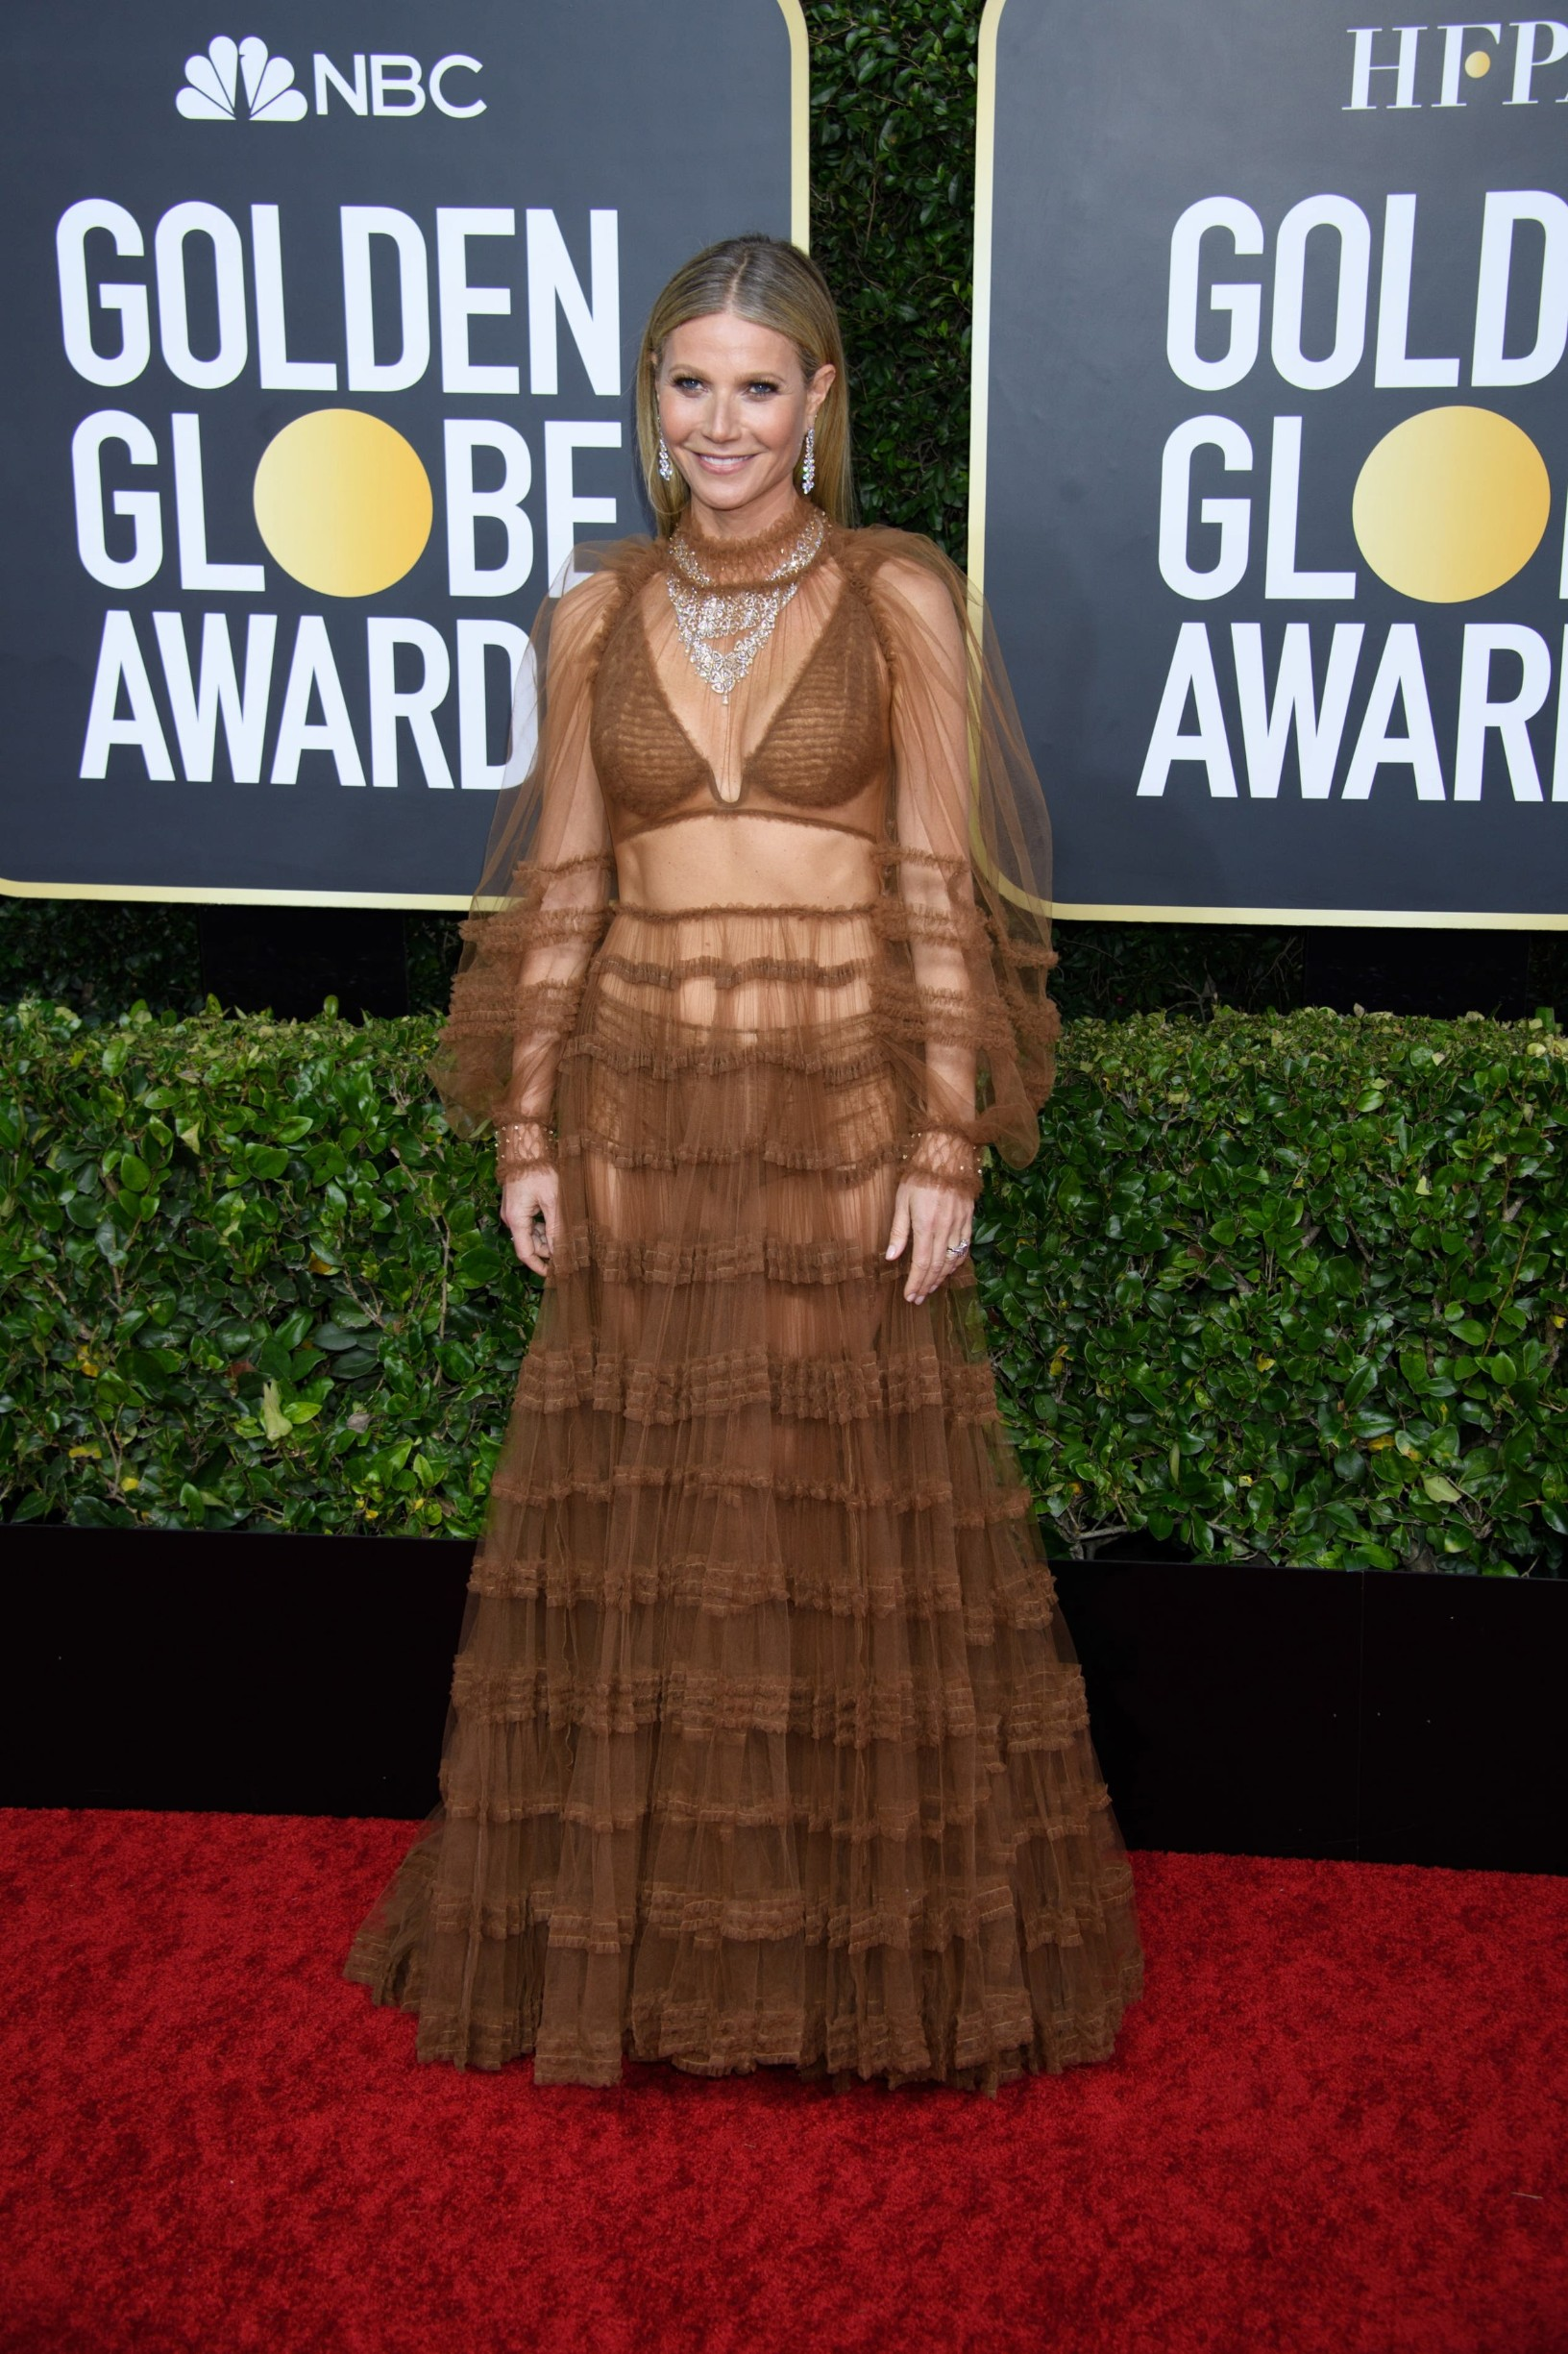 Gwyneth Paltrow arrives at the 77th Annual Golden Globe Awards at the Beverly Hilton in Beverly Hills, CA on Sunday, January 5, 2020.,Image: 491235590, License: Rights-managed, Restrictions: NO ITALY, GERMANY, BENELUX, USA or AUSTRALIA - Fee Payable Upon Reproduction - For queries contact Avalon.red - sales@avalon.red London: +44 (0) 20 7421 6000 Los Angeles: +1 (310) 822 0419 Berlin: +49 (0) 30 76 212 251, Model Release: no, Credit line: PacificCoastNews/Avalon.red / Pacific coast news / Profimedia